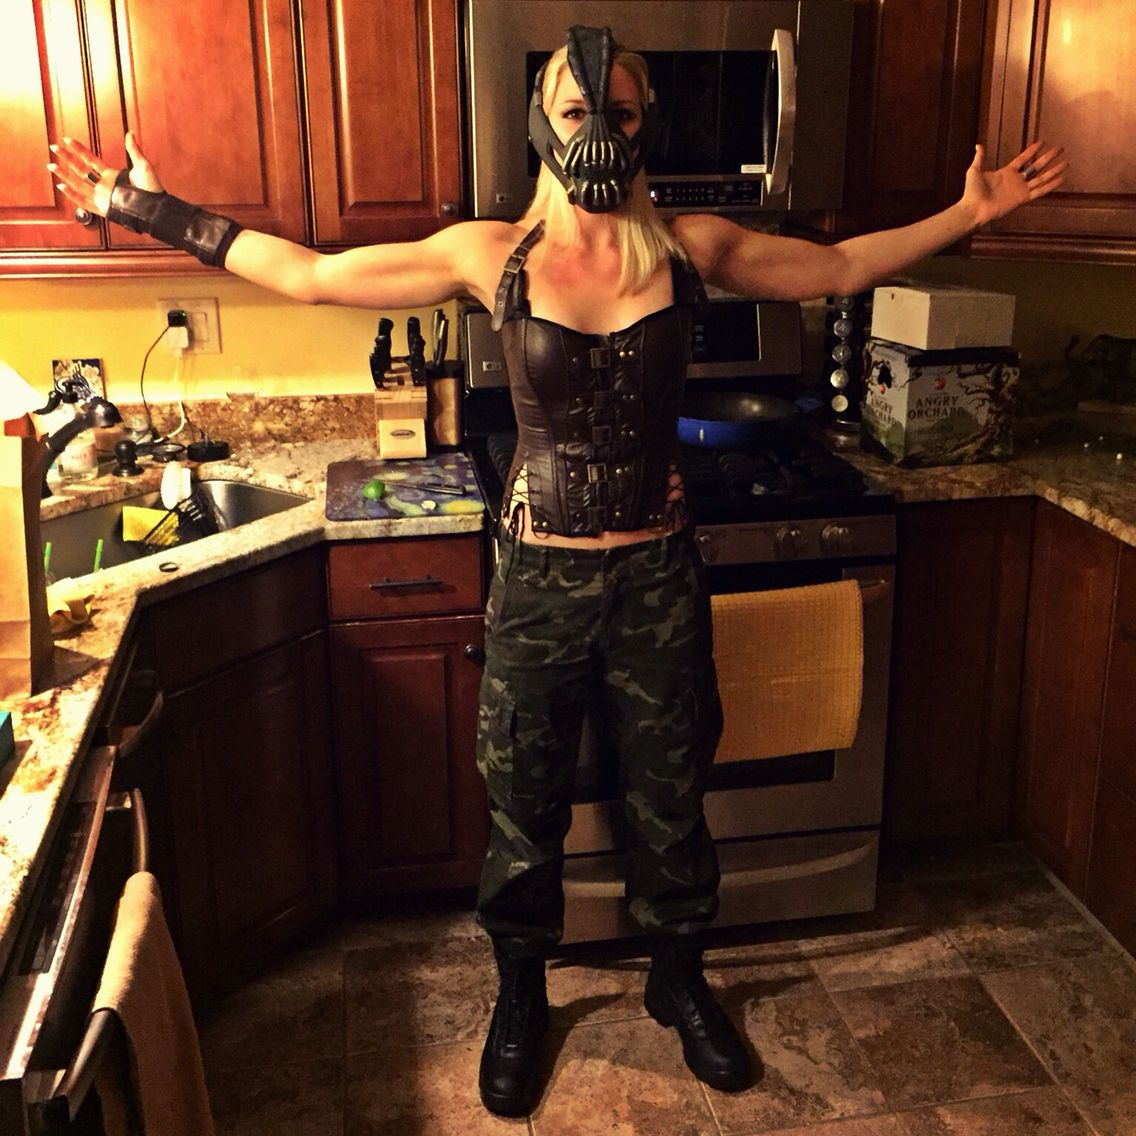 Female bane costume diy halloween costumes pinterest bane female bane costume diy solutioingenieria Choice Image